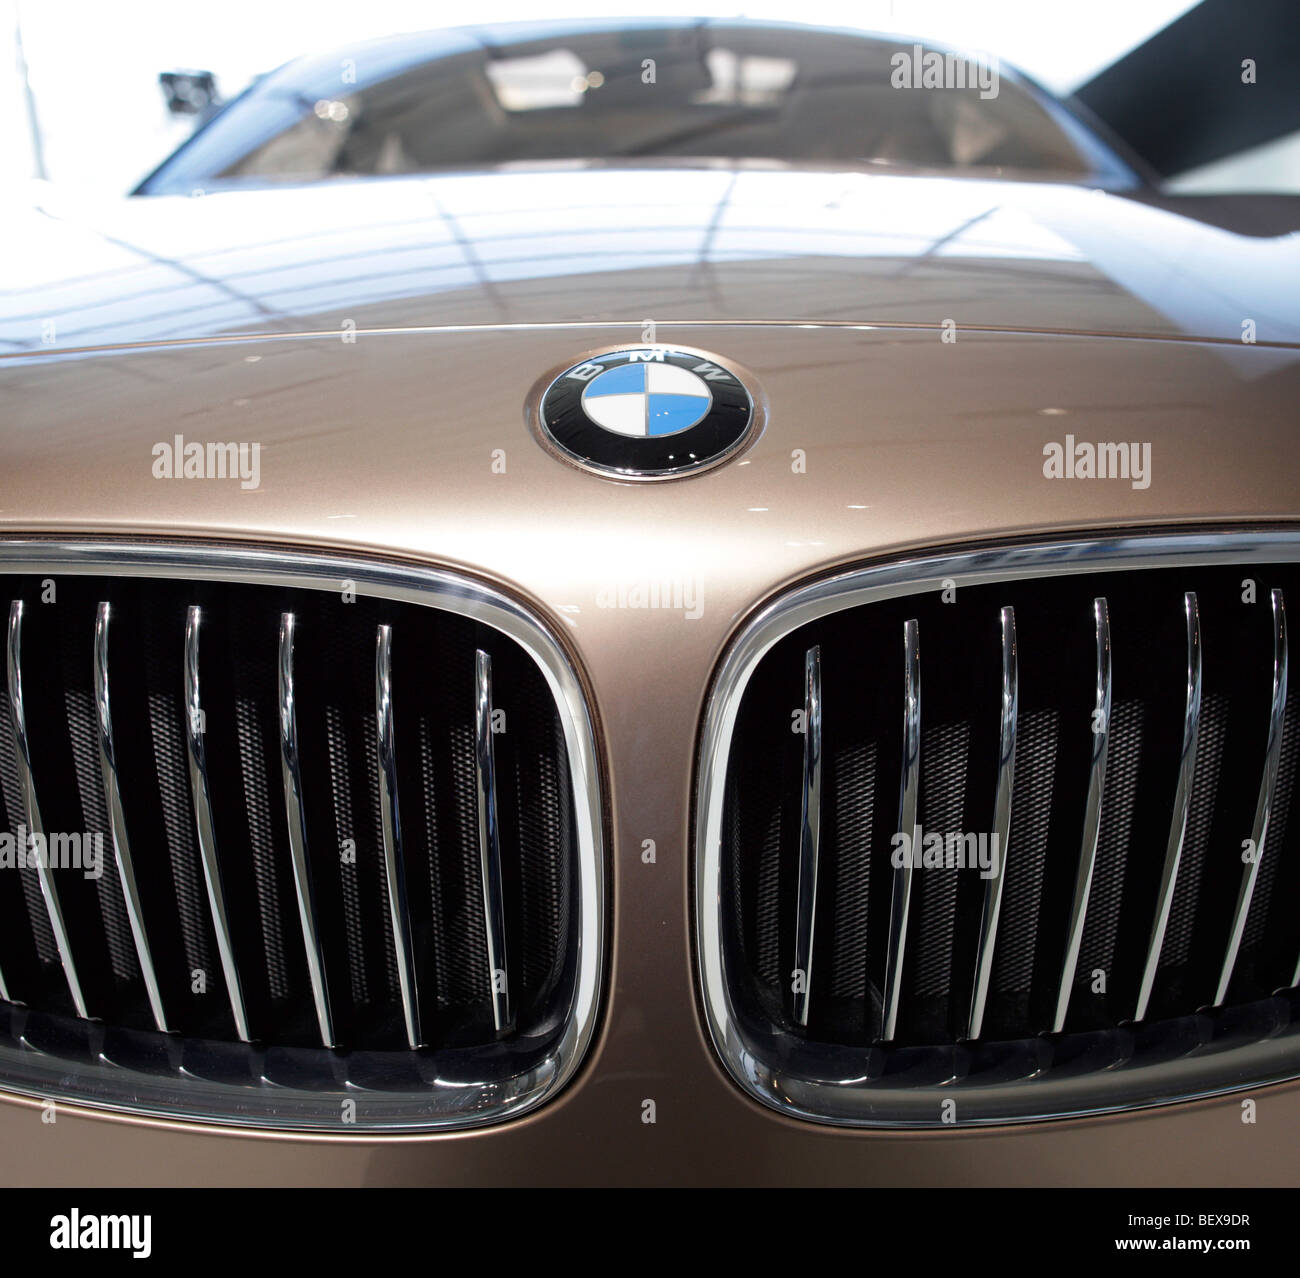 Radiator grille of a BMW Concept X6 - Stock Image